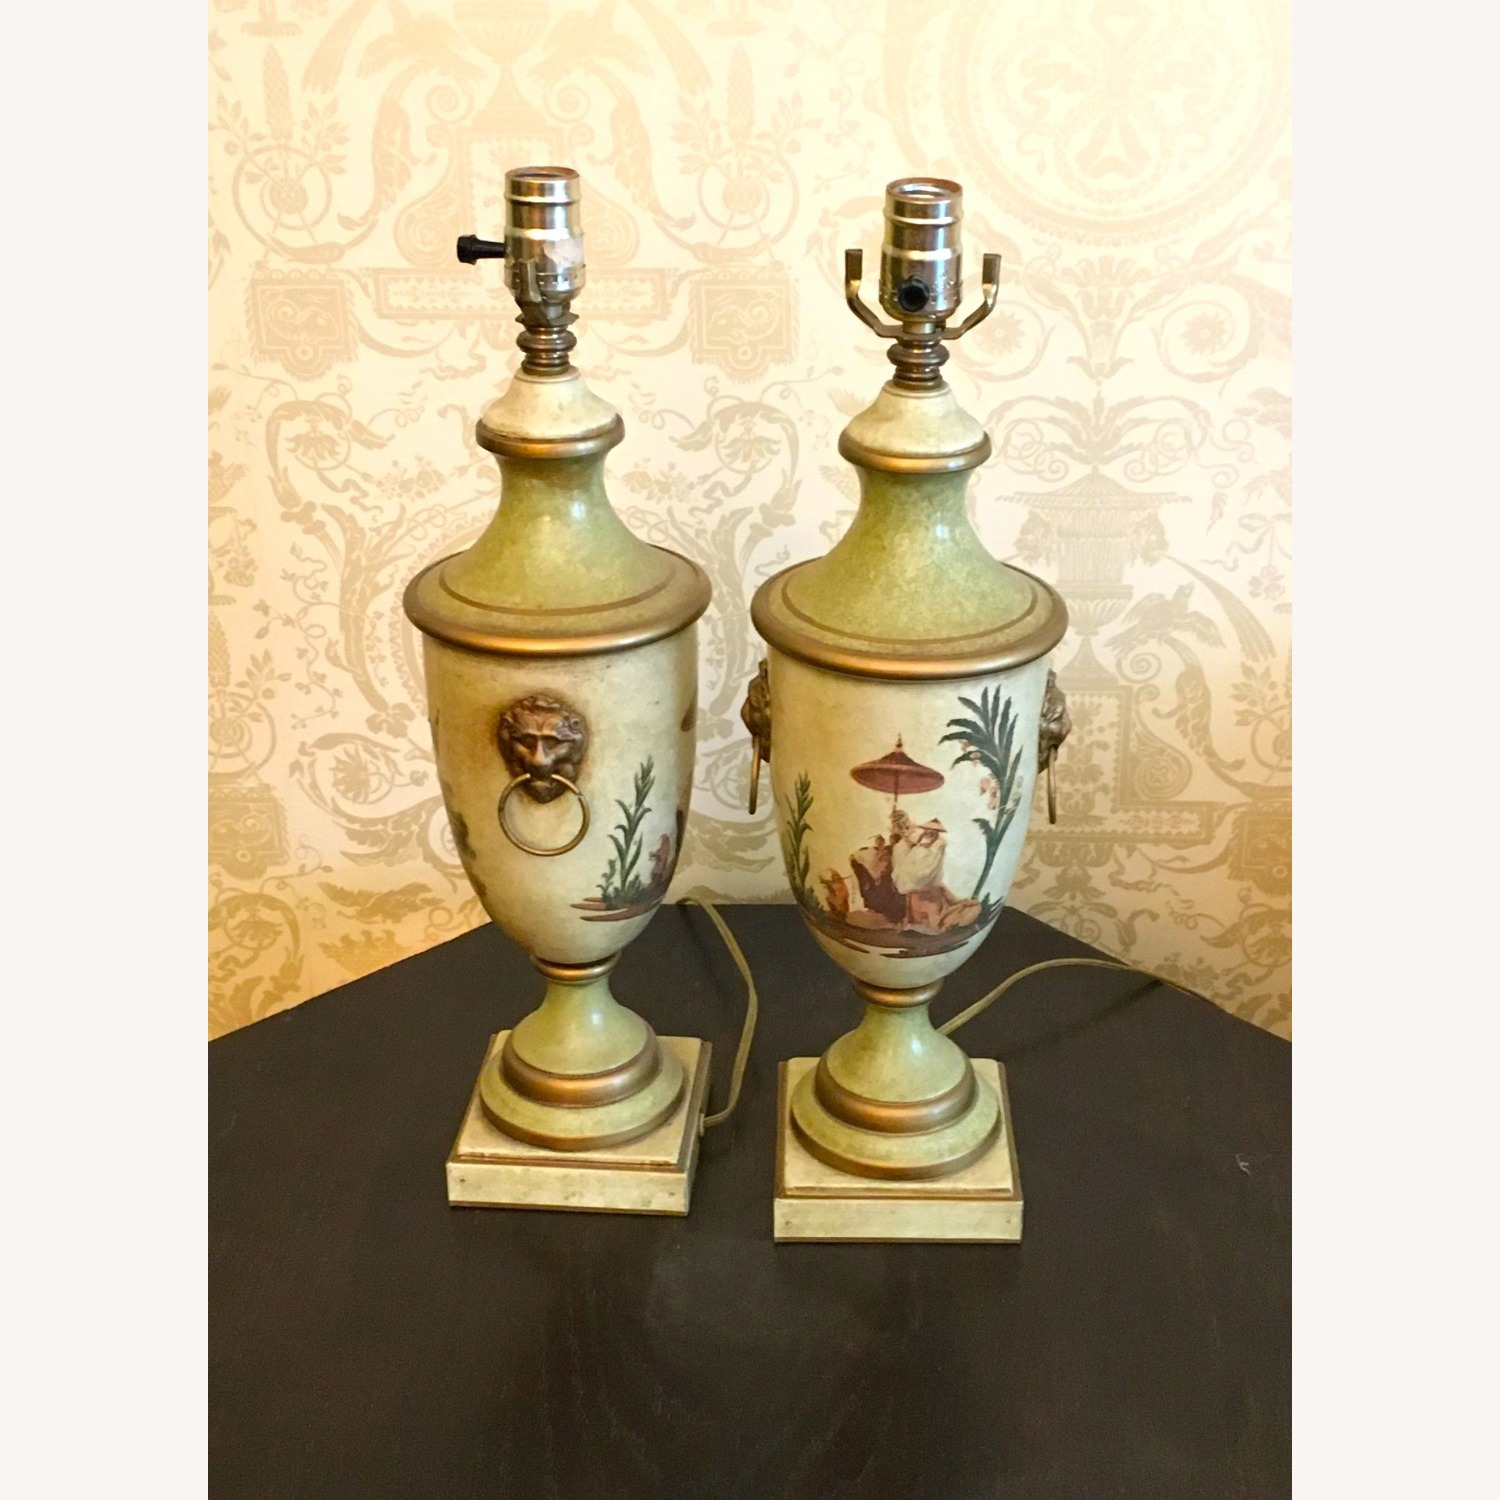 Pair of Hand Painted Asian Theme Toleware Lamps - image-2